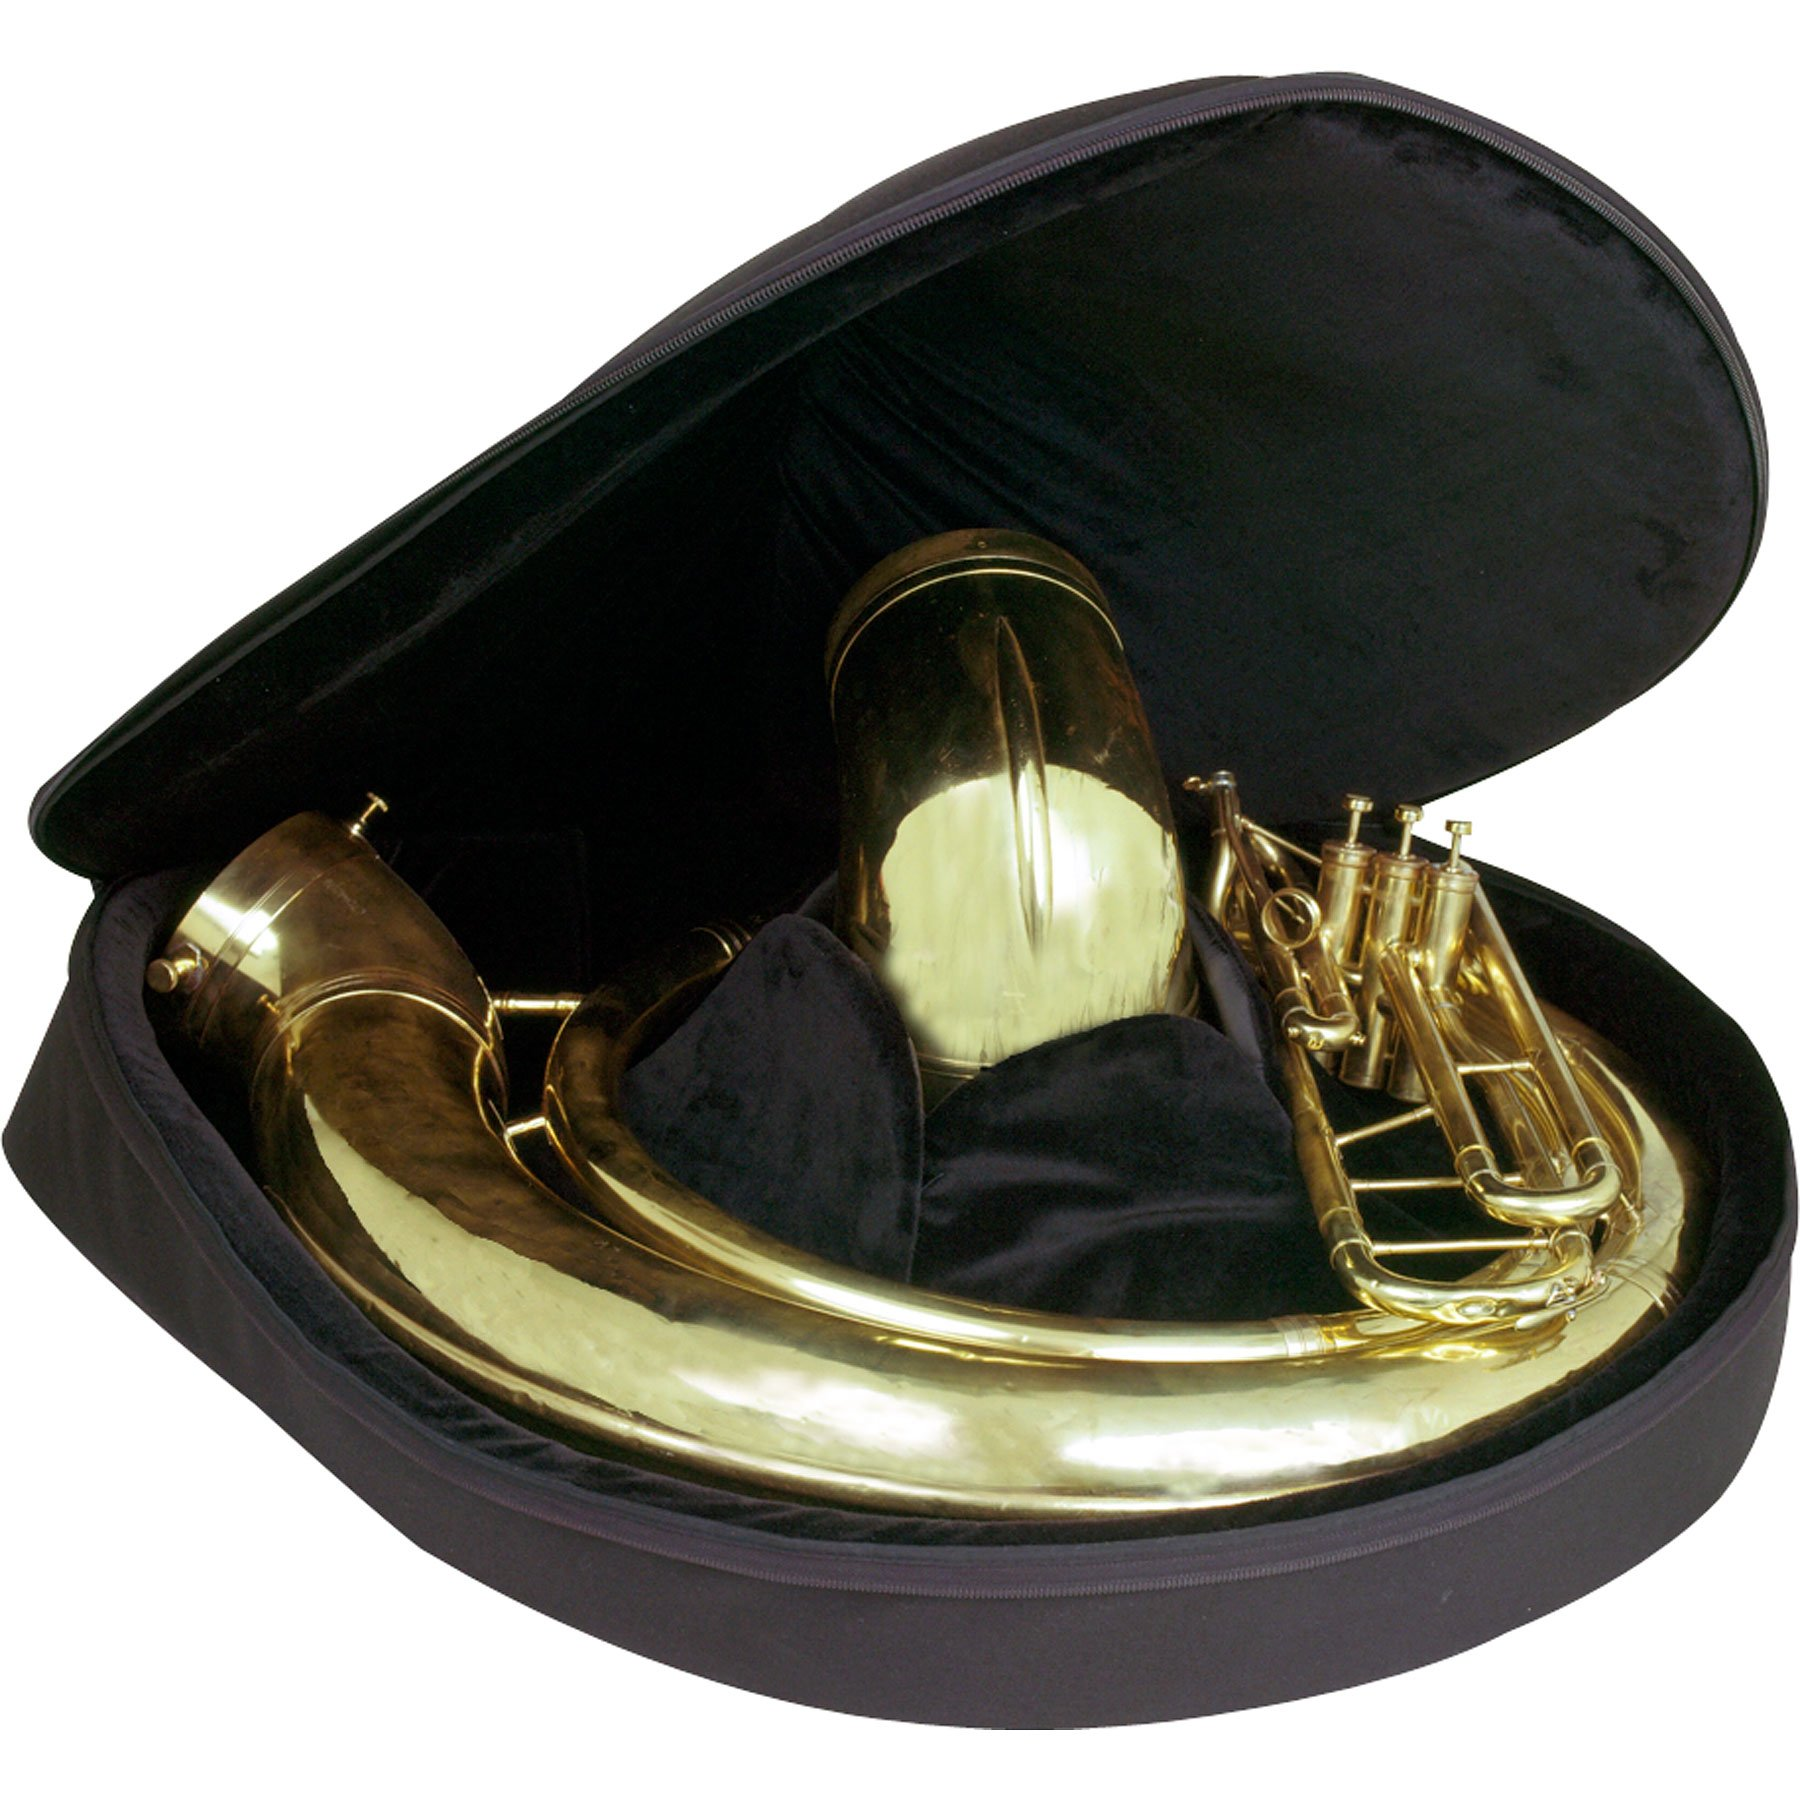 Protec Sousaphone Gig Bag - Gold Series, Model C247